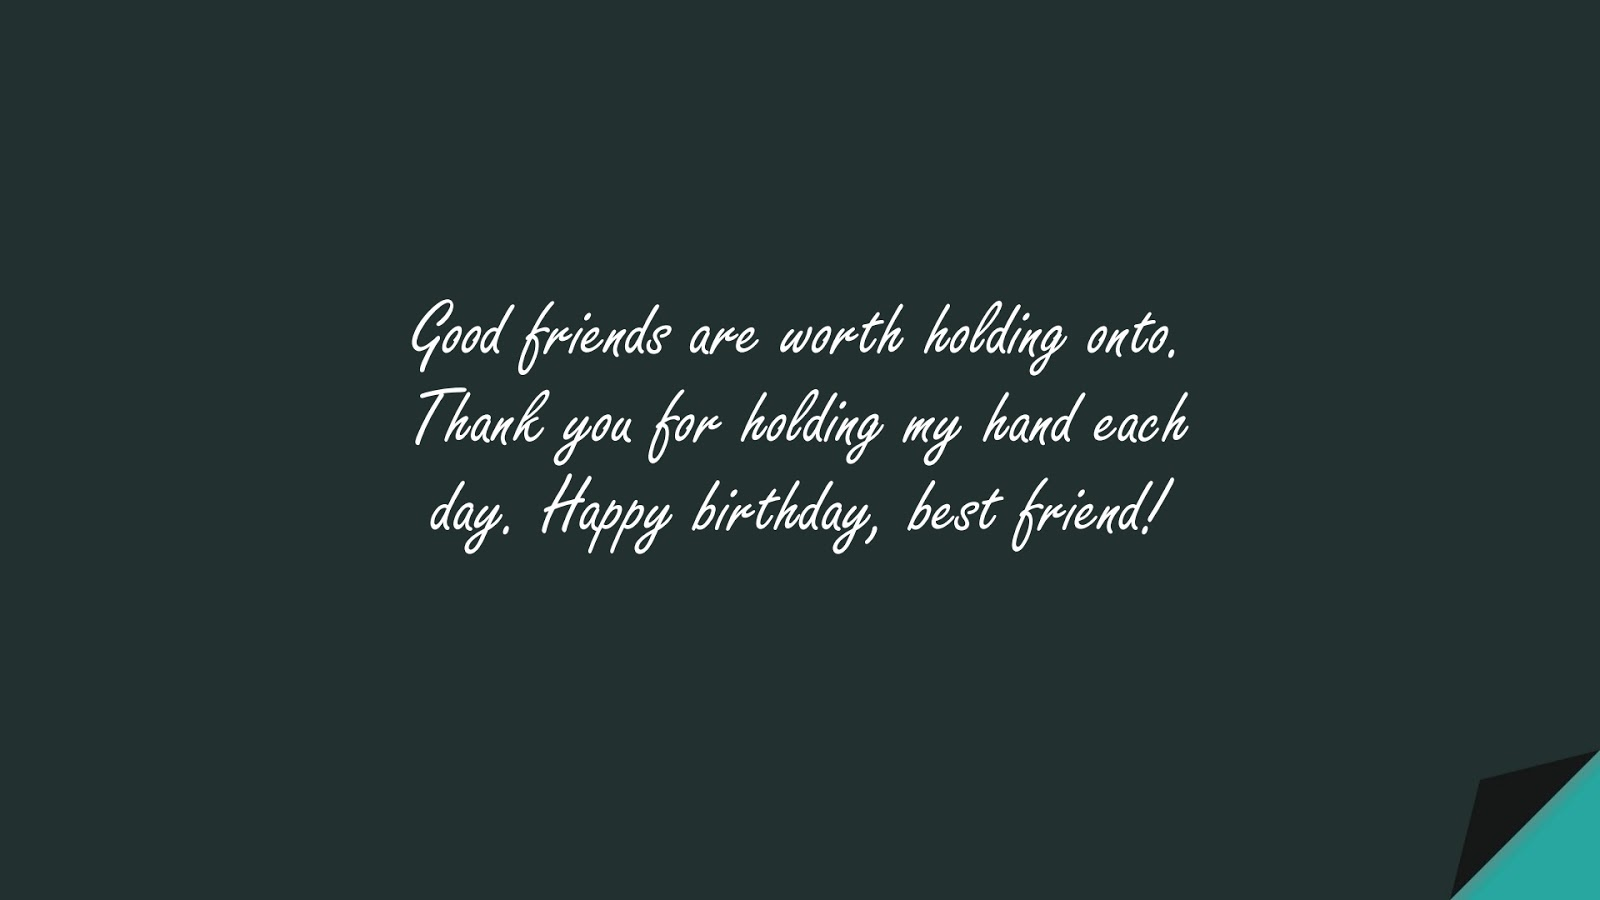 Good friends are worth holding onto. Thank you for holding my hand each day. Happy birthday, best friend!FALSE